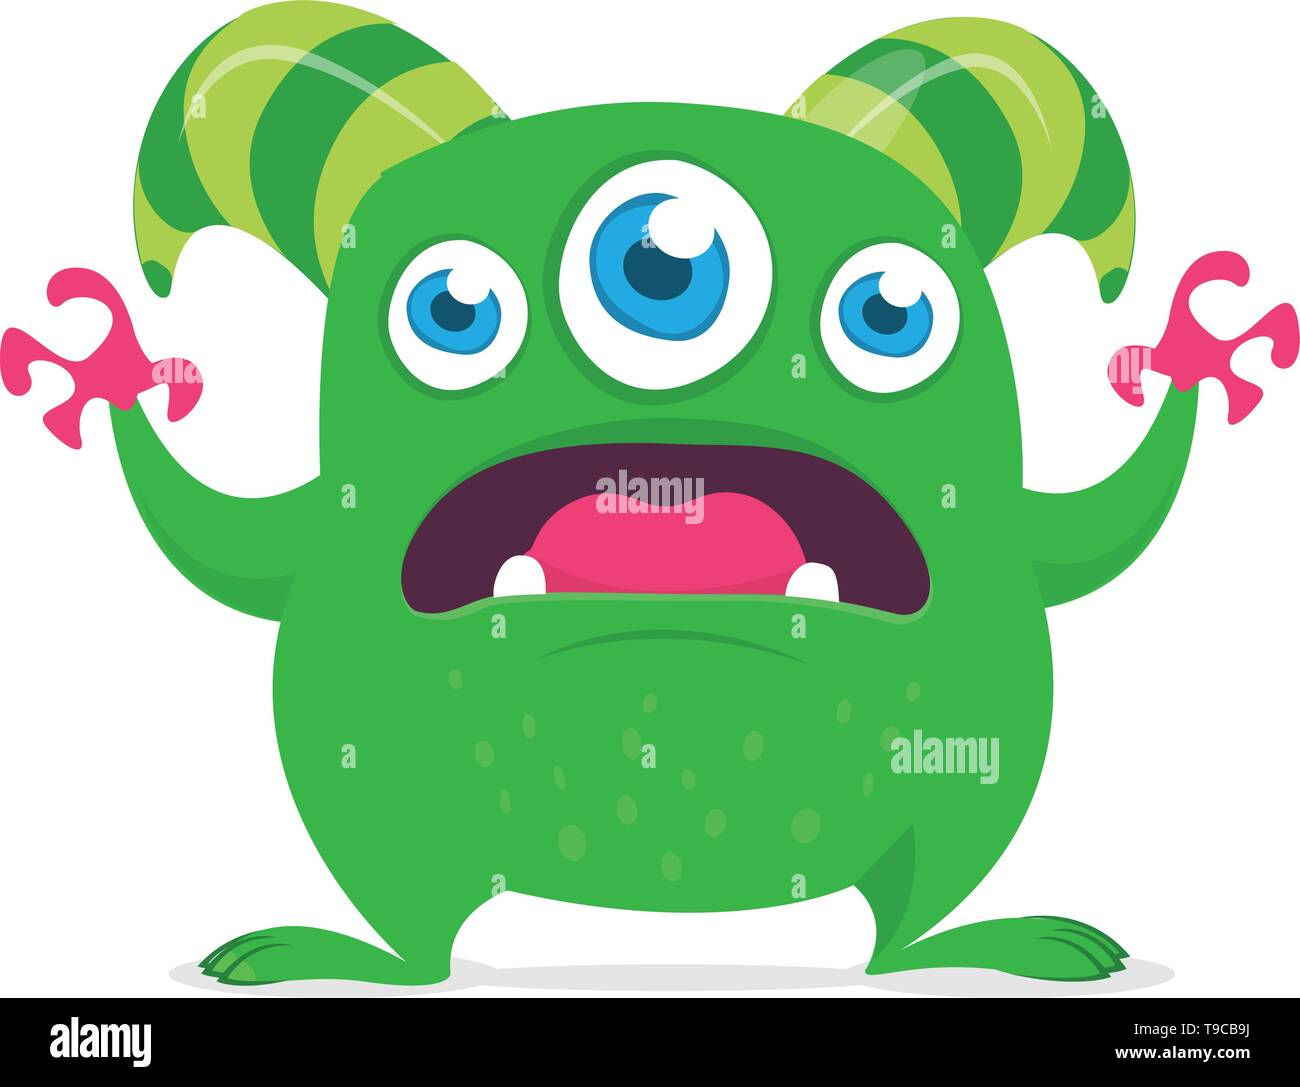 Cute cartoon alien monster with three eyes. Vector illustration isolated on white - Stock Image